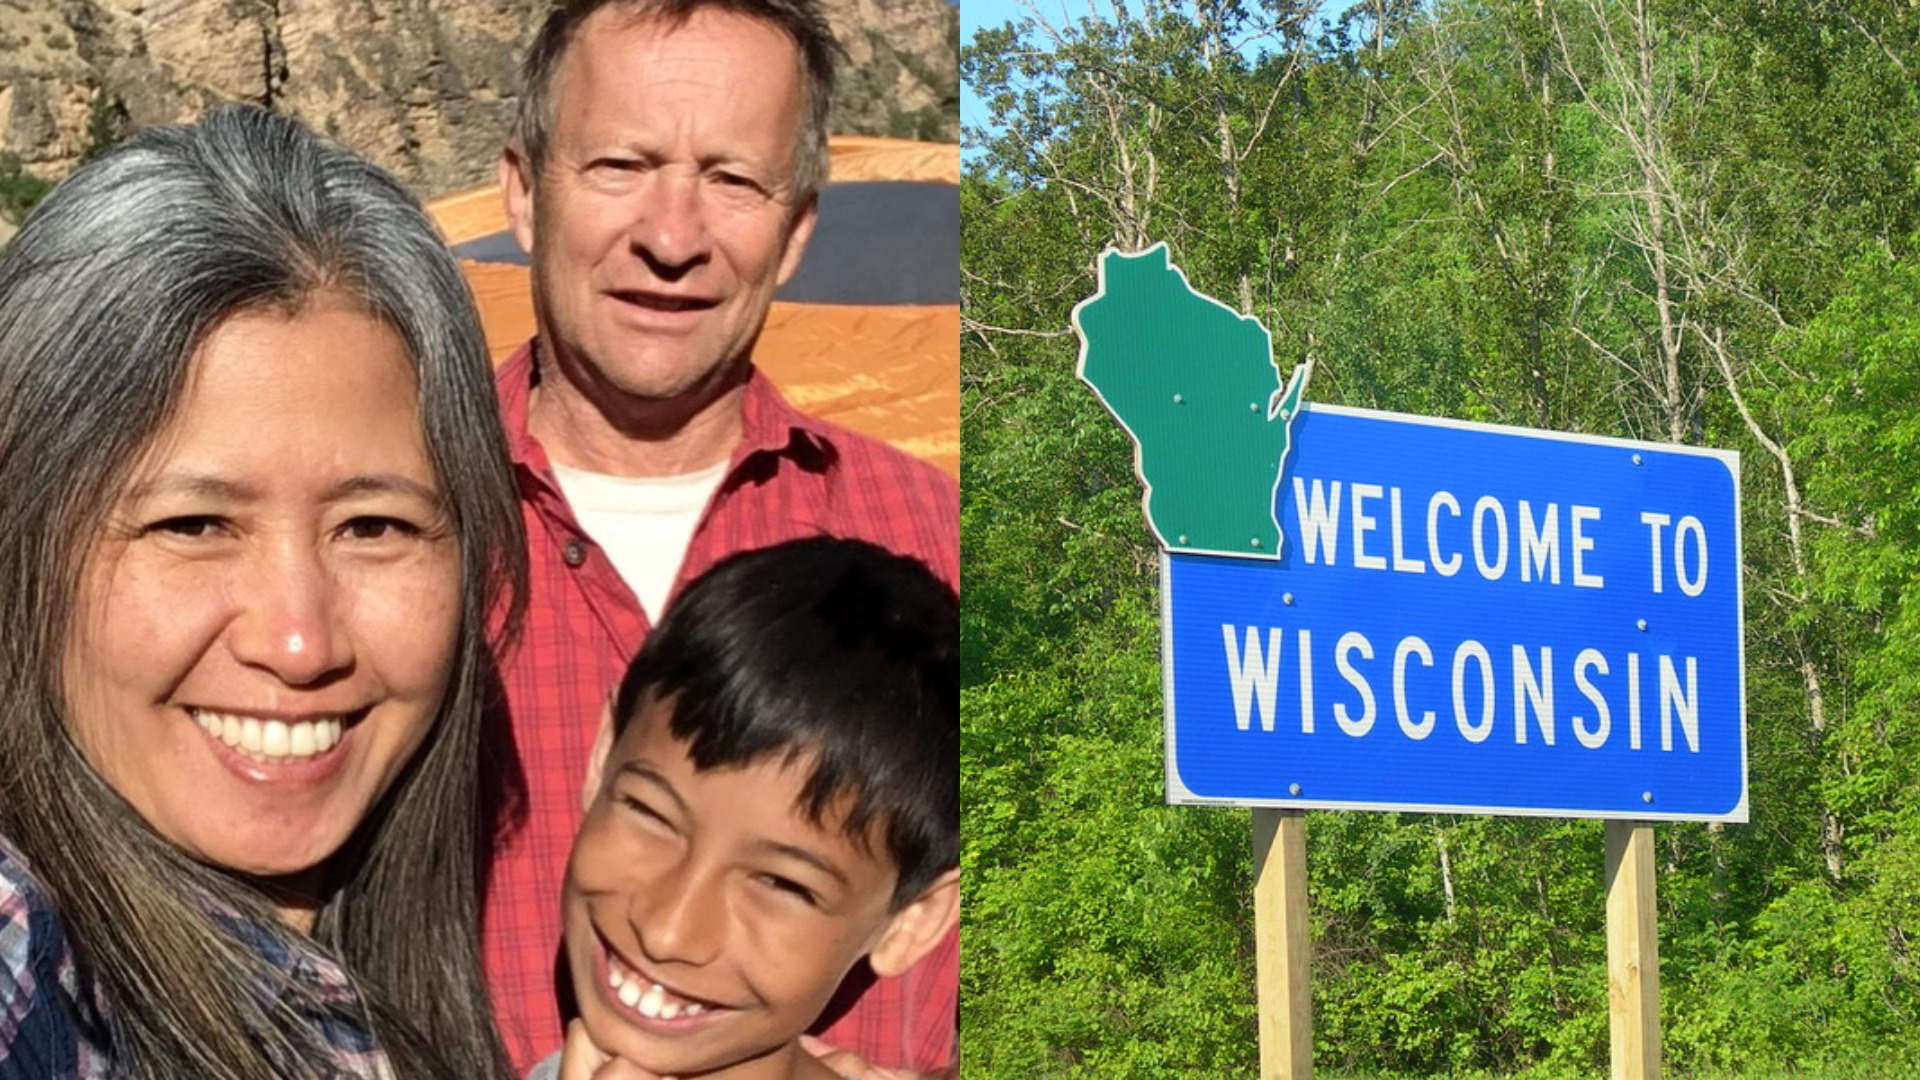 www.weareresonate.com: Biracial family sues Wisconsin for banning Asian children from college scholarships